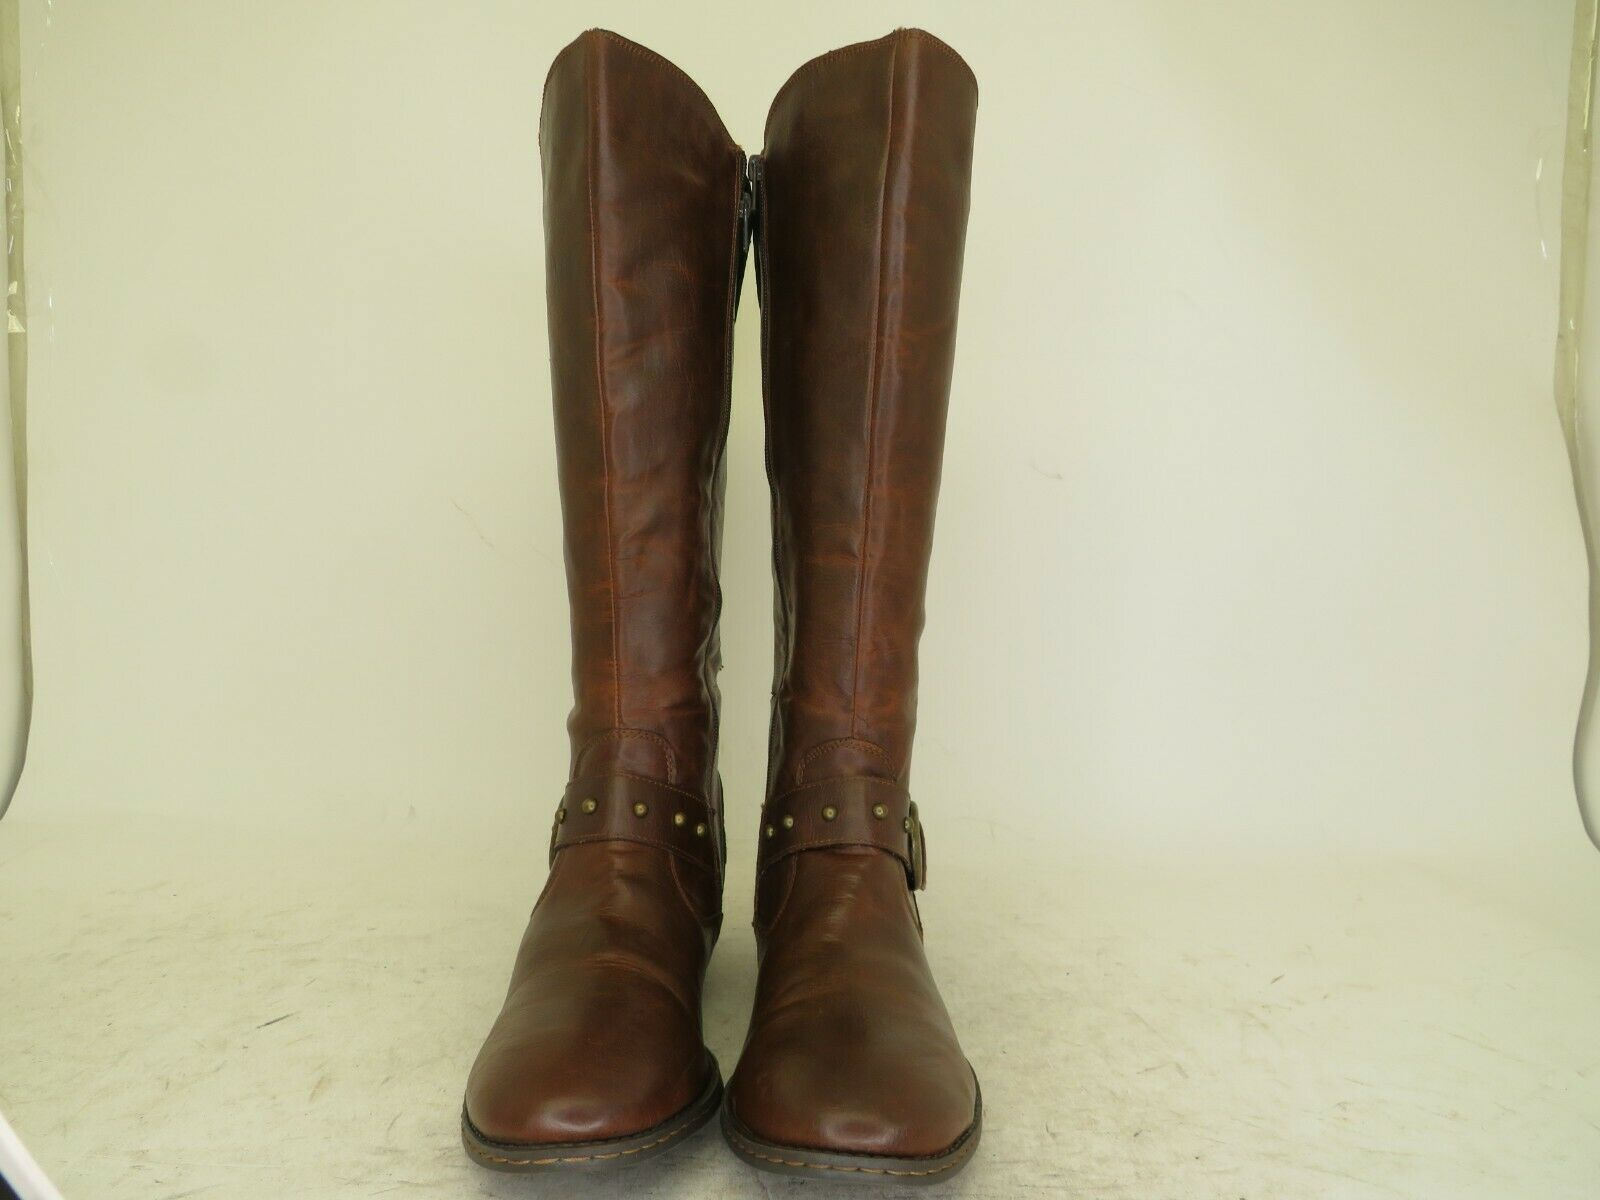 Born Brown Faux Leather Zip Buckle Studded Fashion Knee High Boots Size 9.5 M